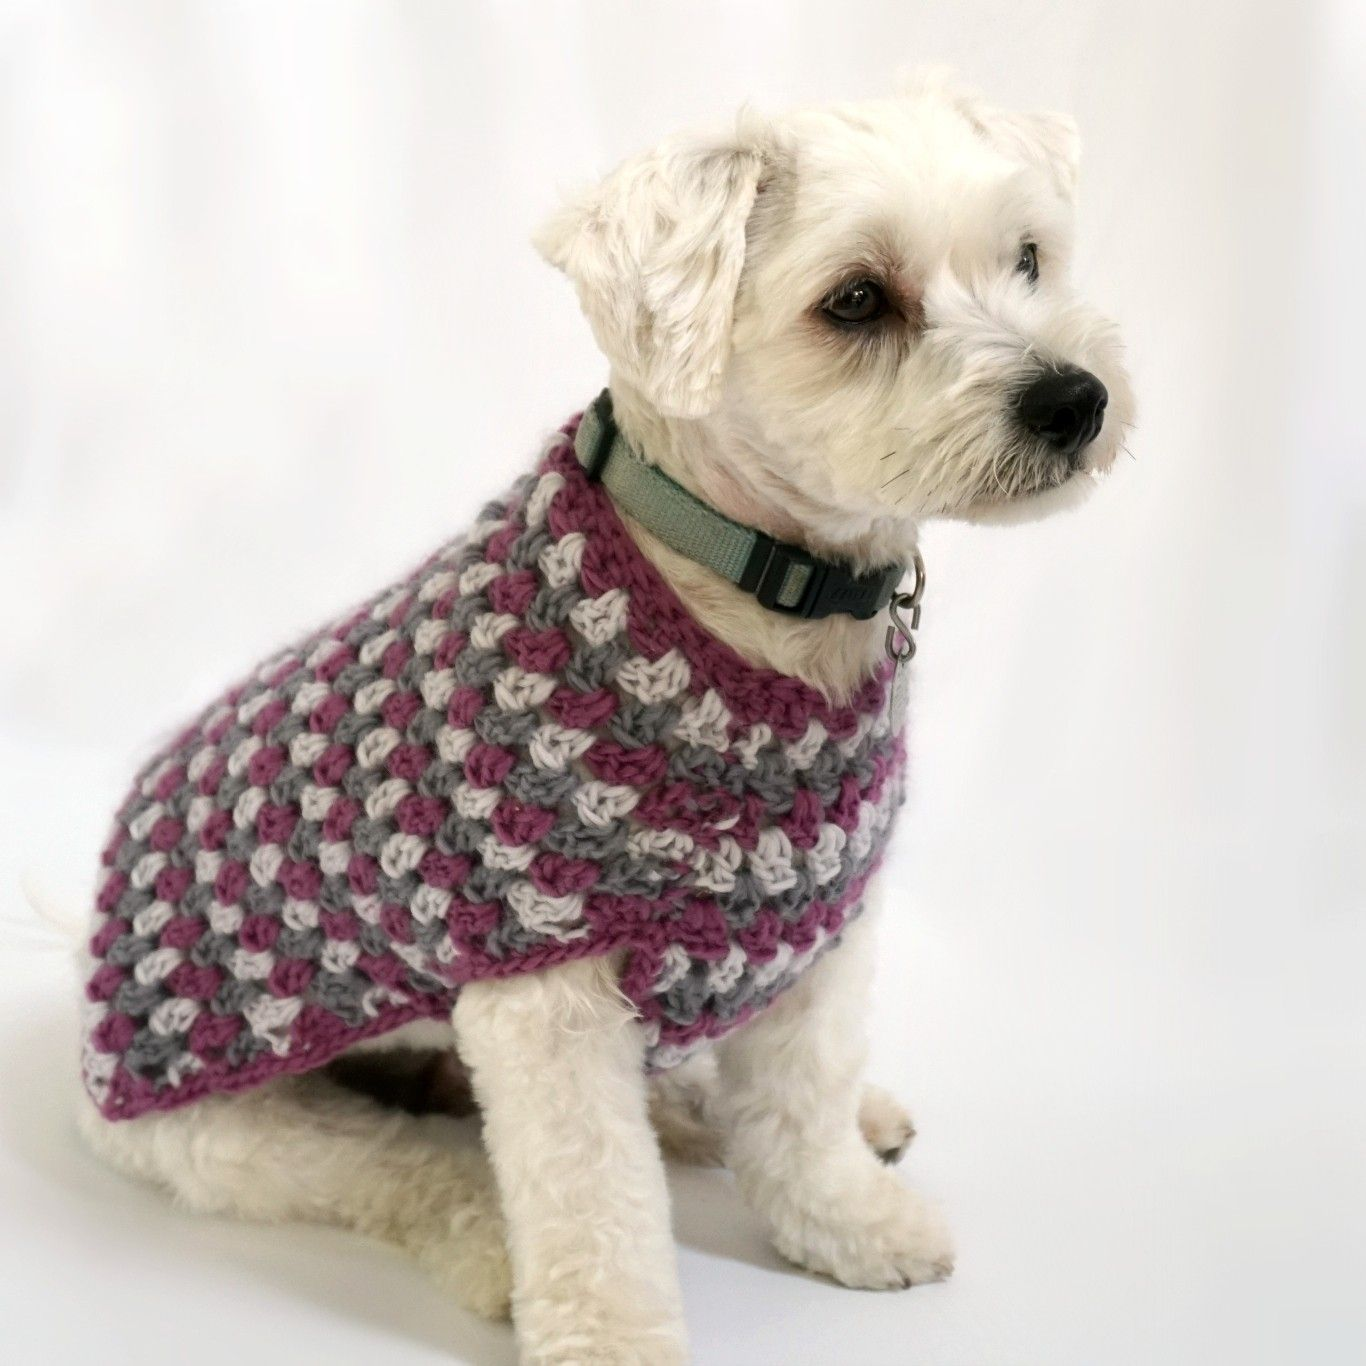 Crochet Kit - Well Dressed Dog Coat | Mascotas, Ganchillo y Suéteres